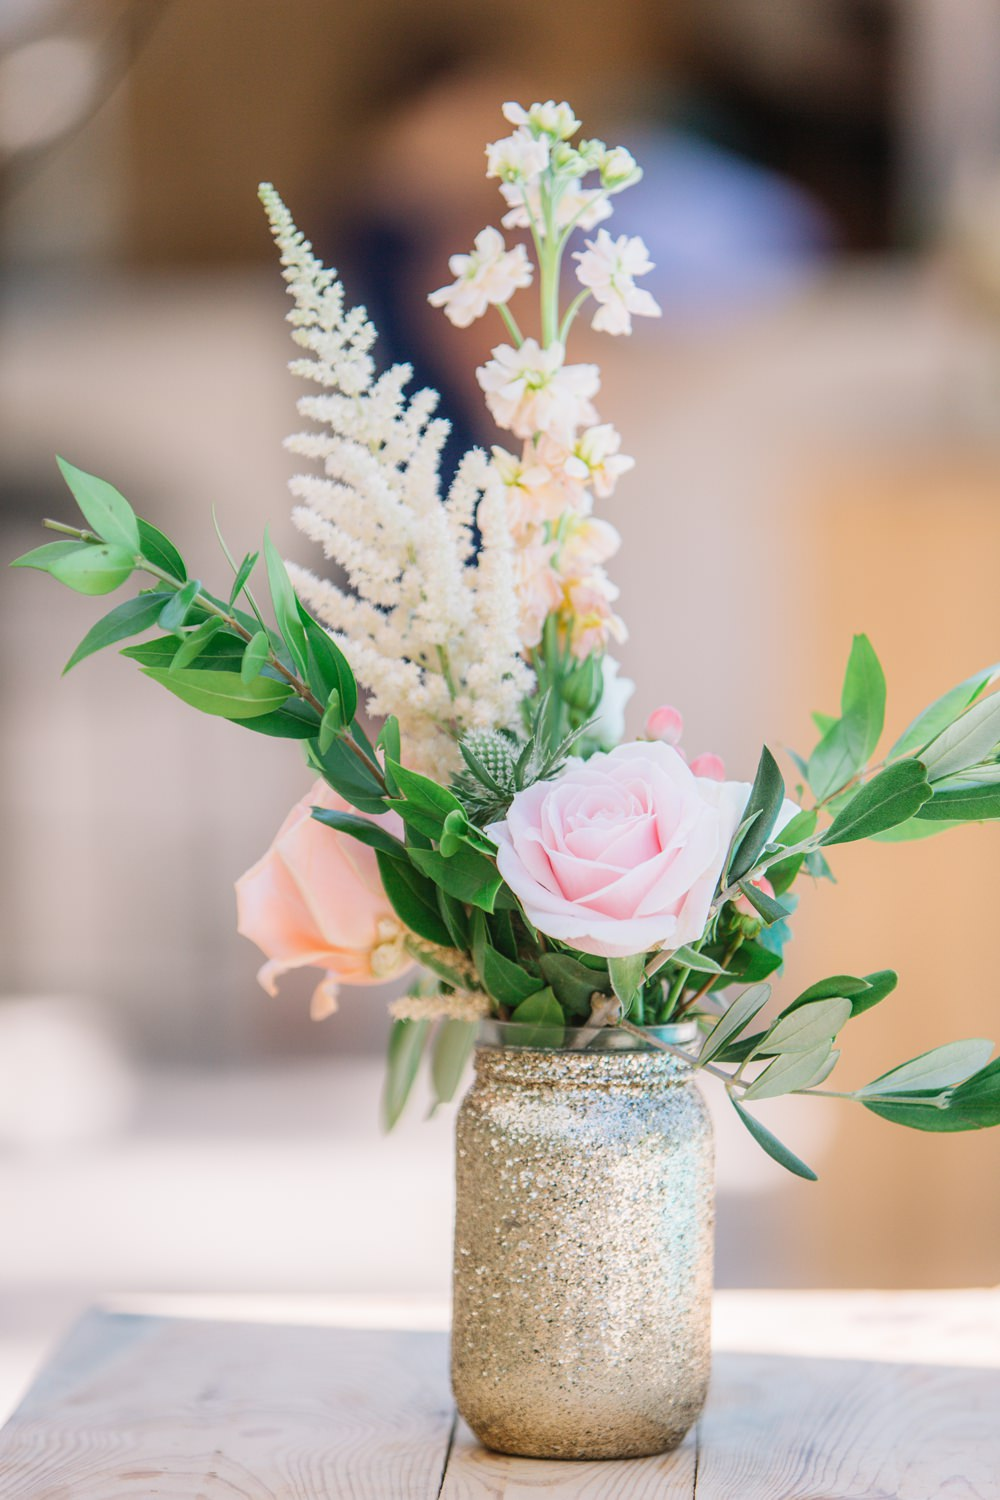 Gold Glitter Jar Flowers Floral Display Saint Tropez Wedding Sophie Boulet Photographe